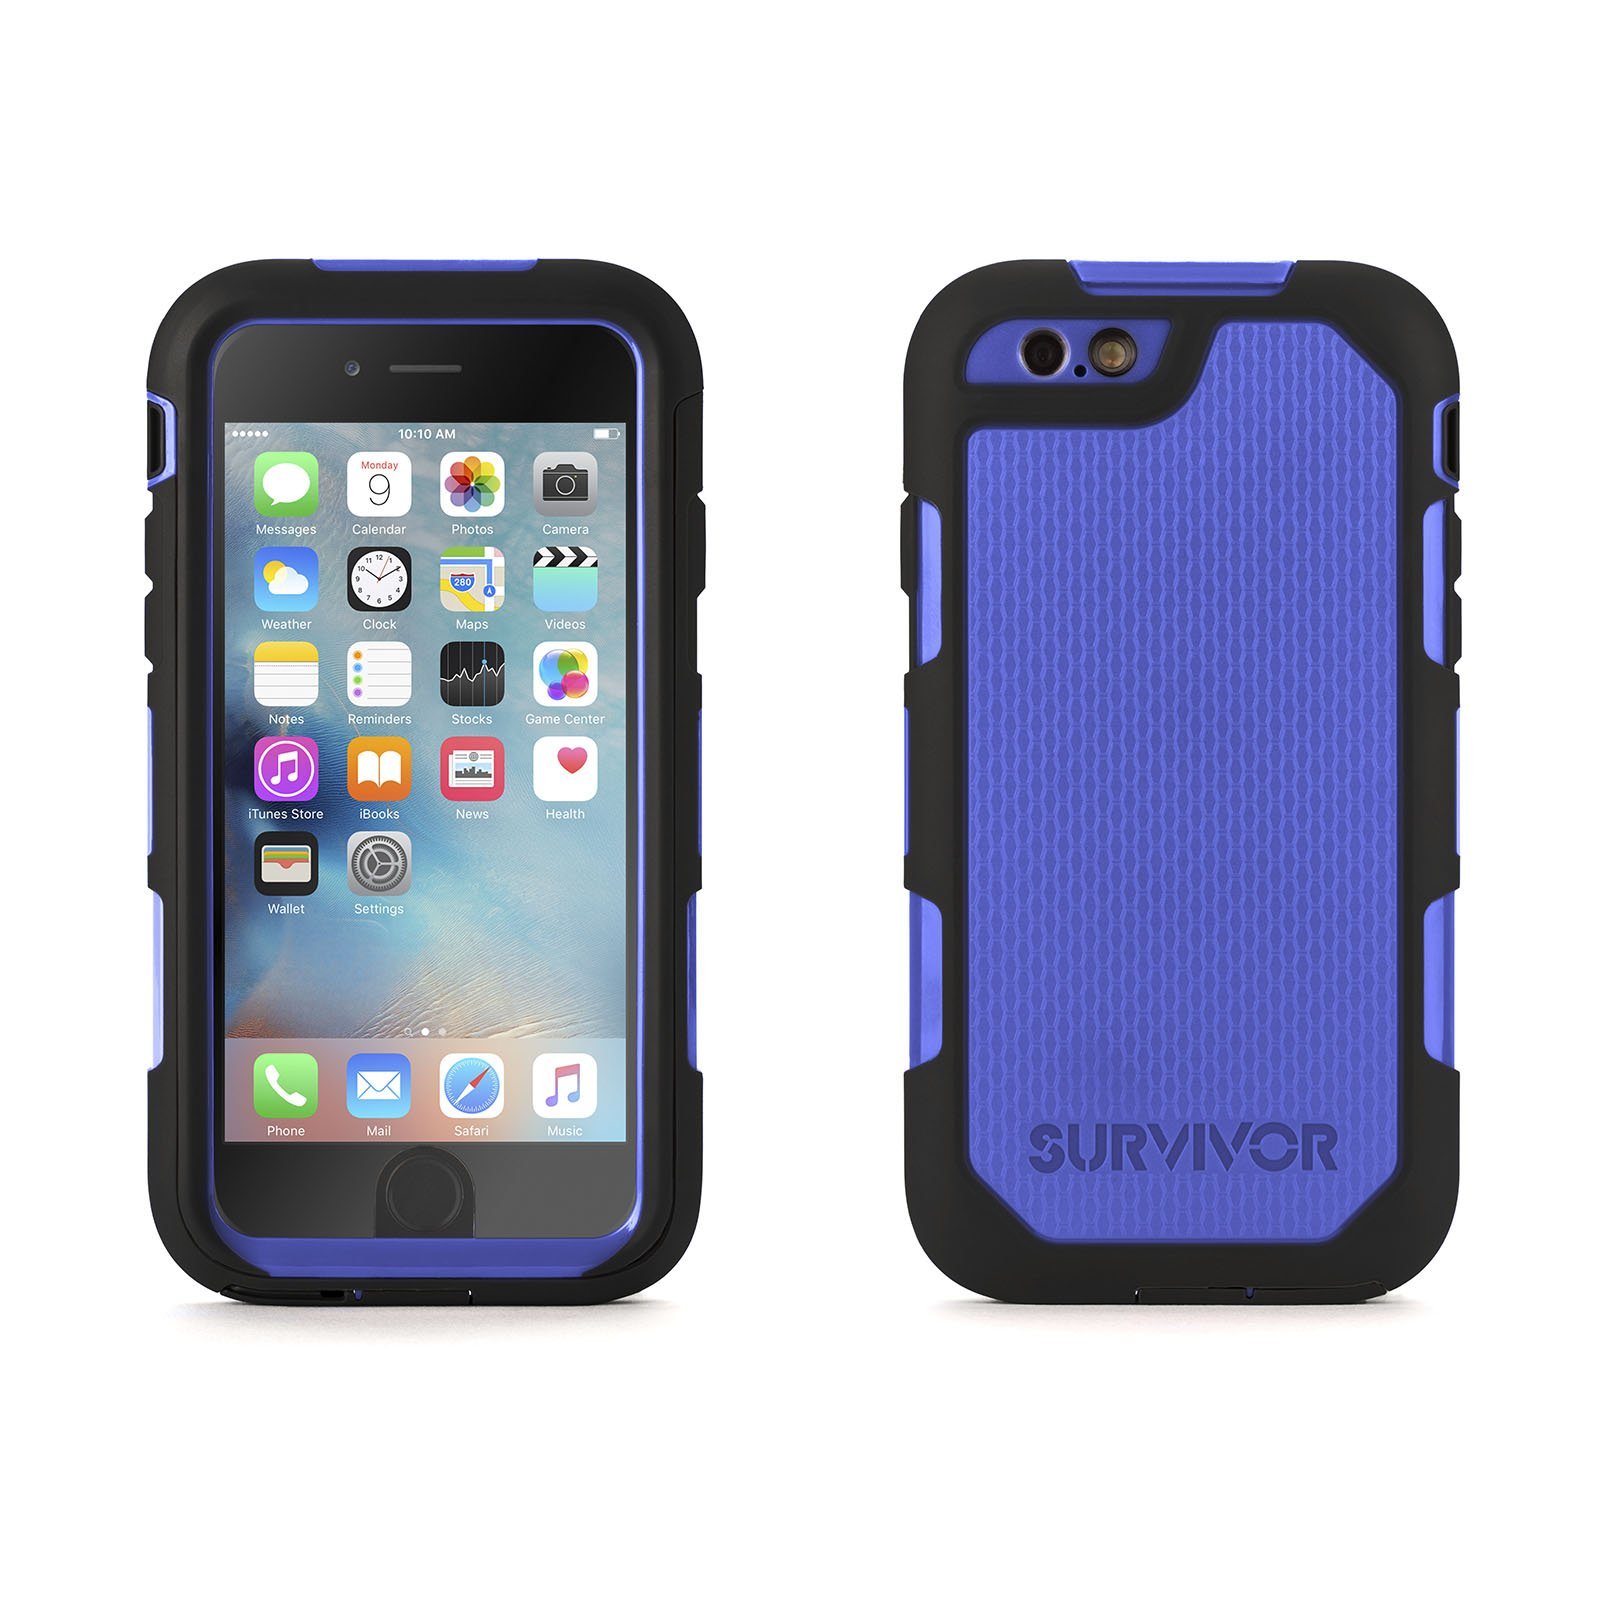 Griffin Griffin Survivor Extreme, iPhone 6 6s Rugged Case 10 ft Drop Protection, Impact Resistant, Sealed from Rain,... by Griffin Technology